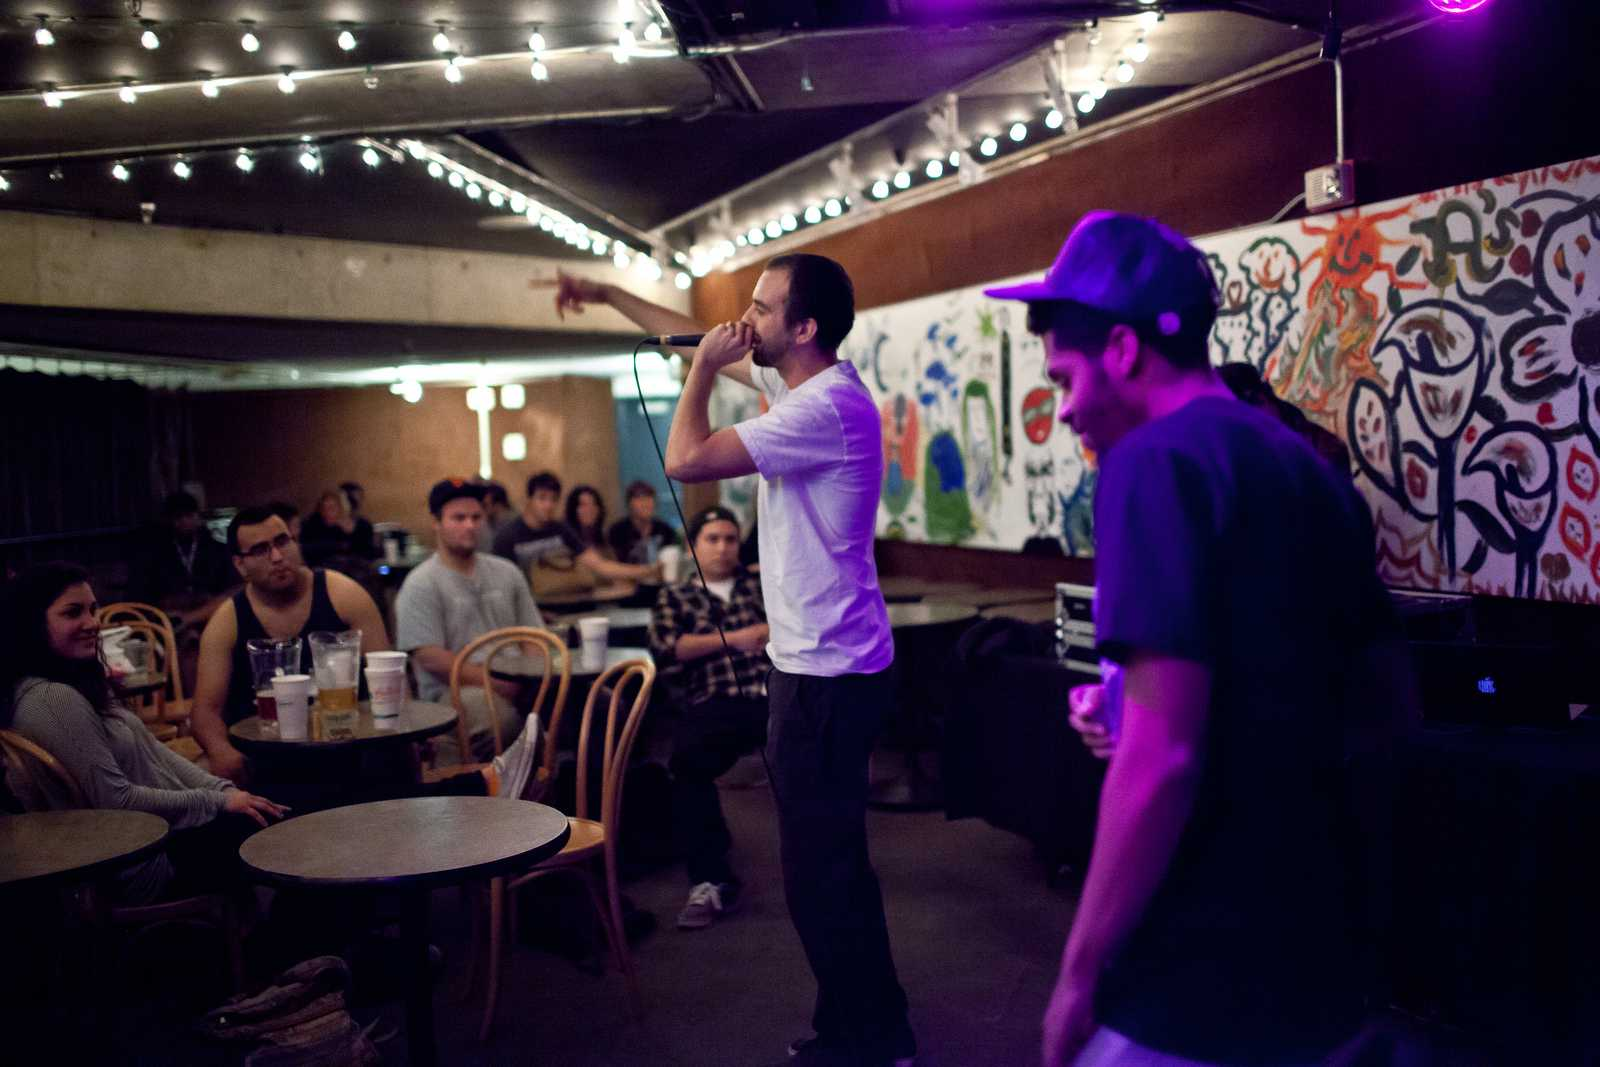 Rappers delight with open mic show at The Depot